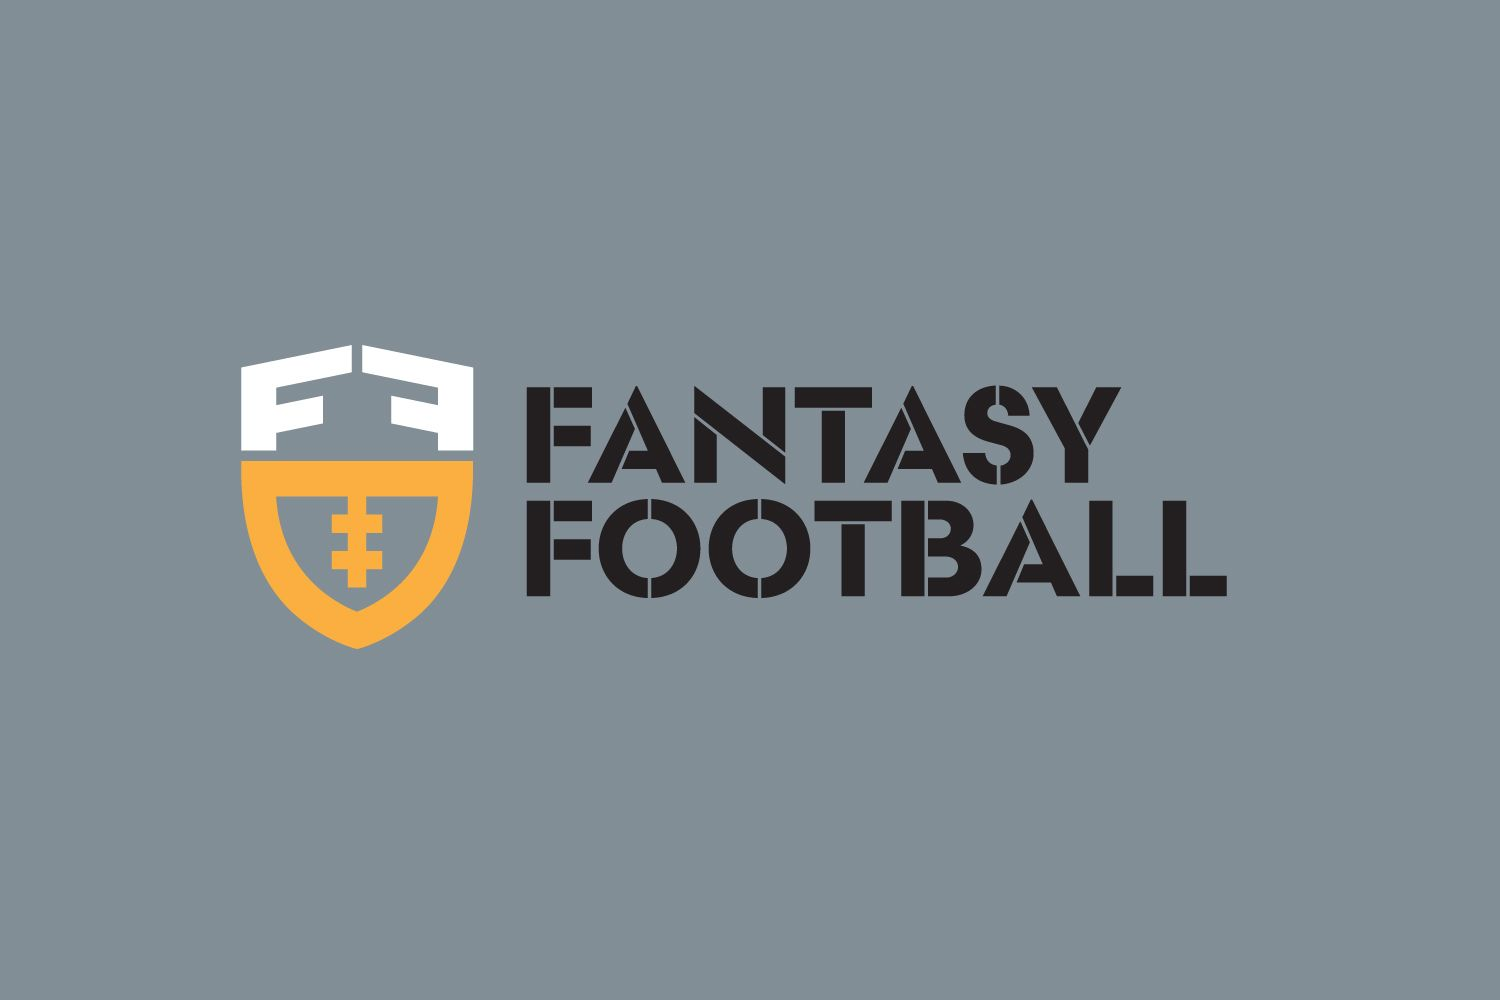 Fantasy Football (With images)   Football logo design ...